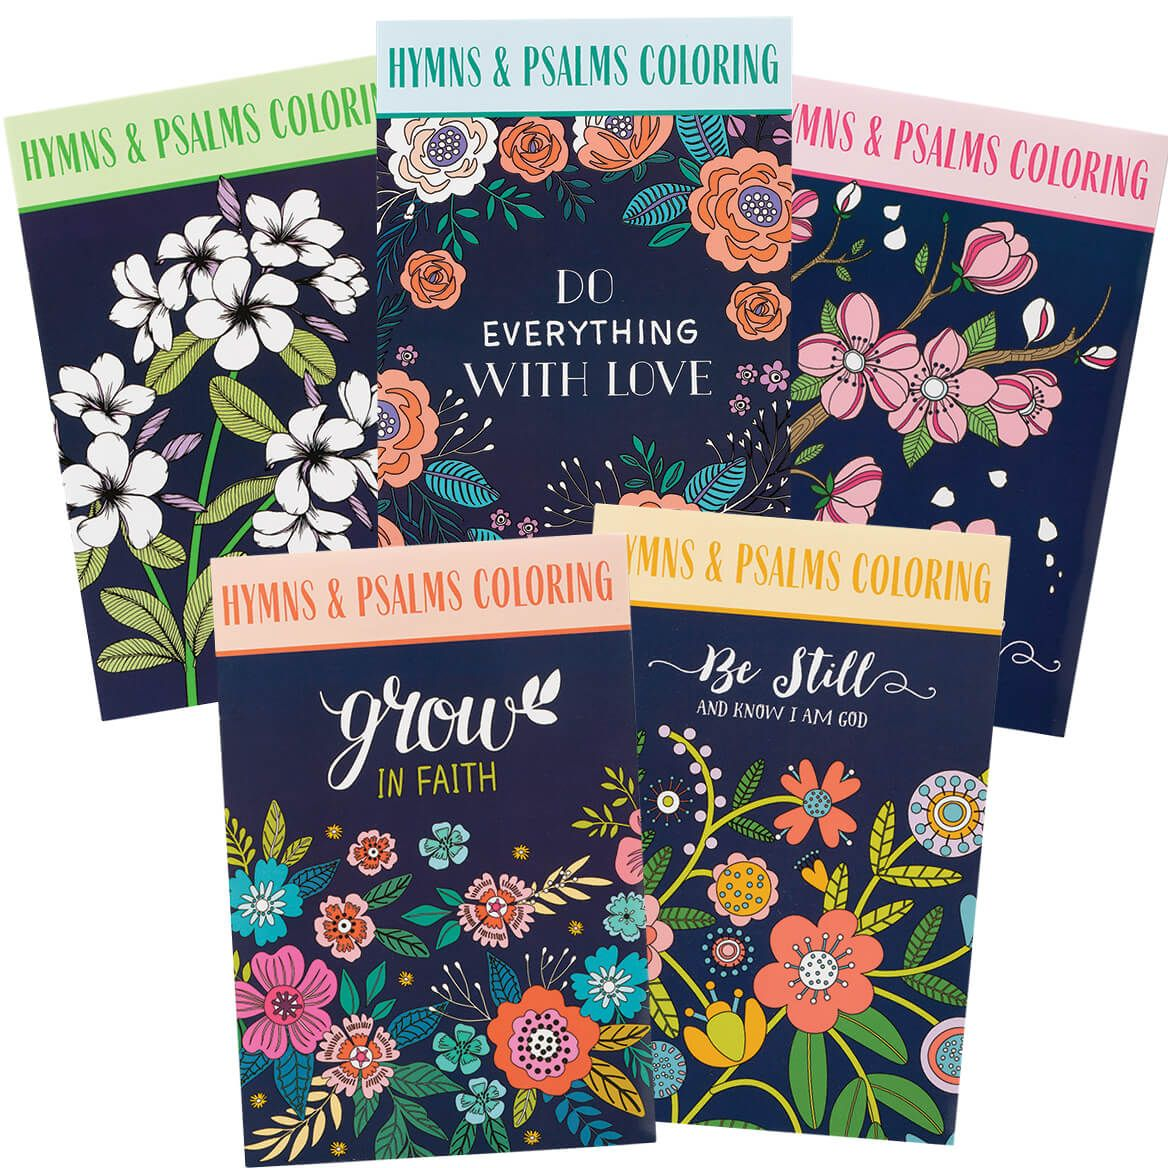 Hymns & Psalms Coloring Books, Set of 5-371345